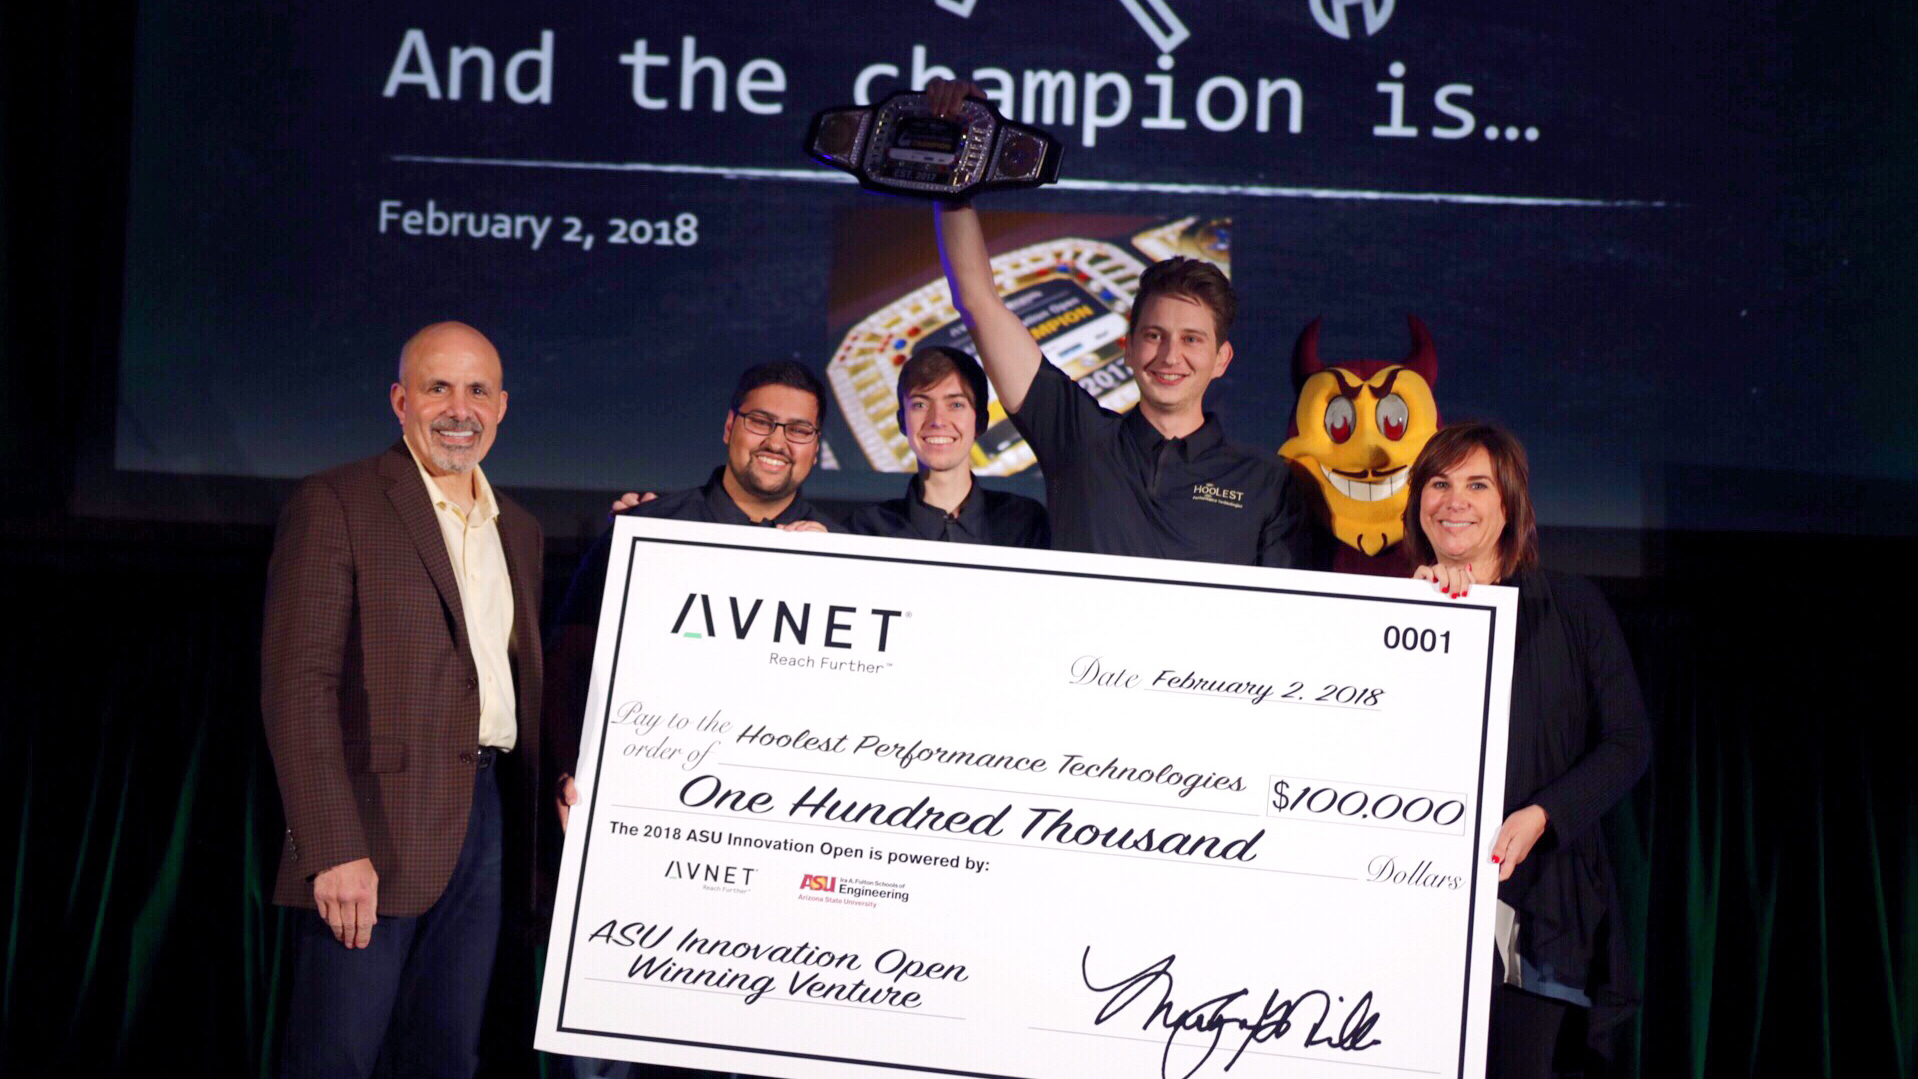 Hoolest team stand on a stage holding gigantic $100,00 prize check at the ASU Innovation Open